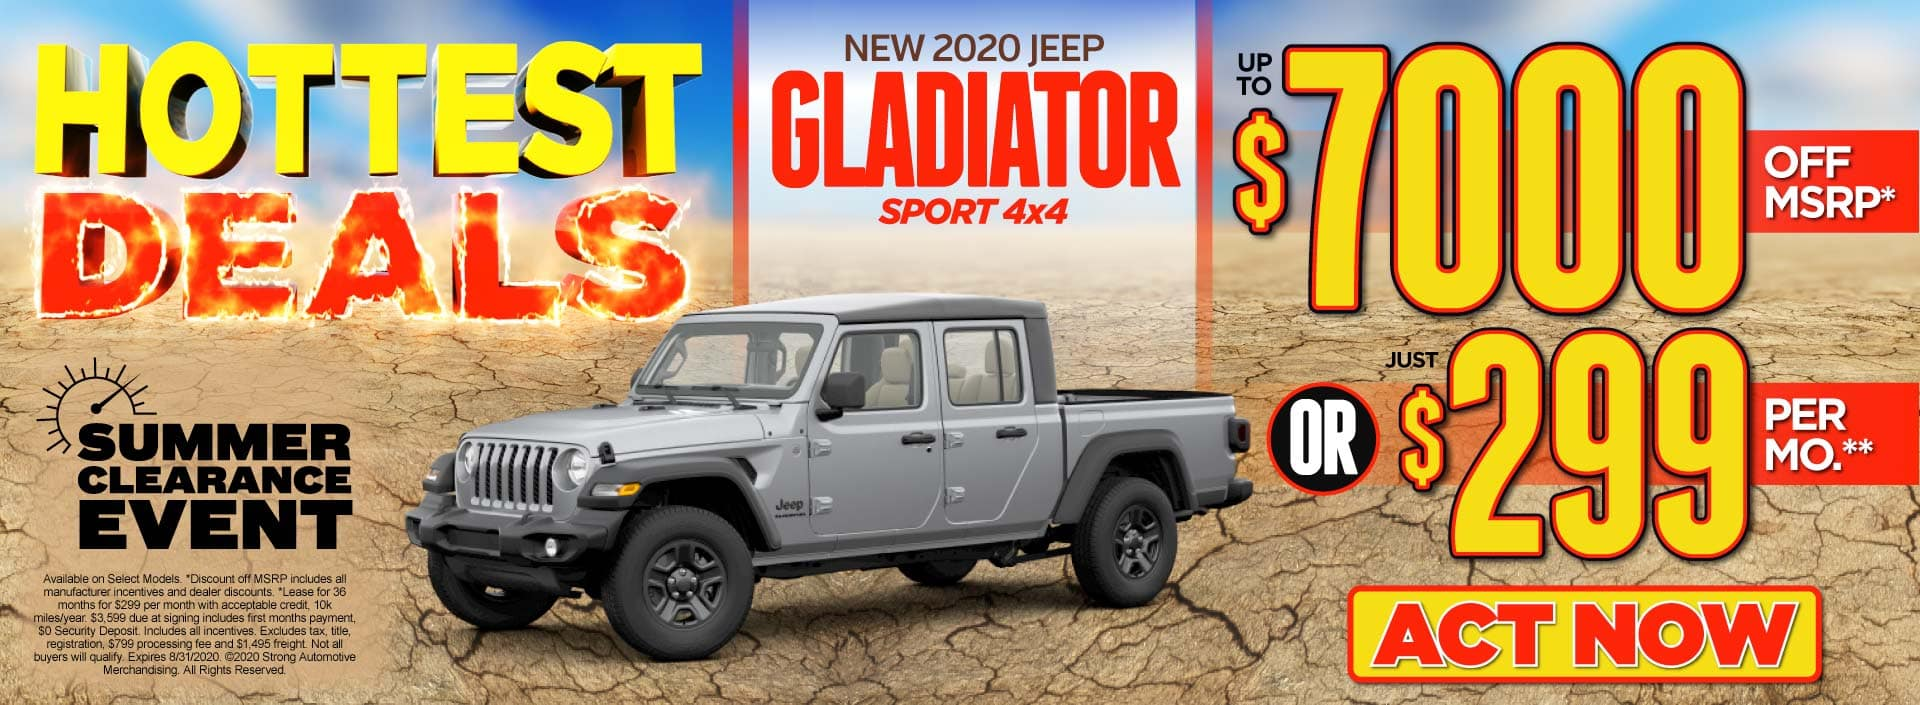 New 2020 Jeep Gladiator Sport 4x4 - up to $7000 off MSRP or just $299 per month - Click to View Inventory